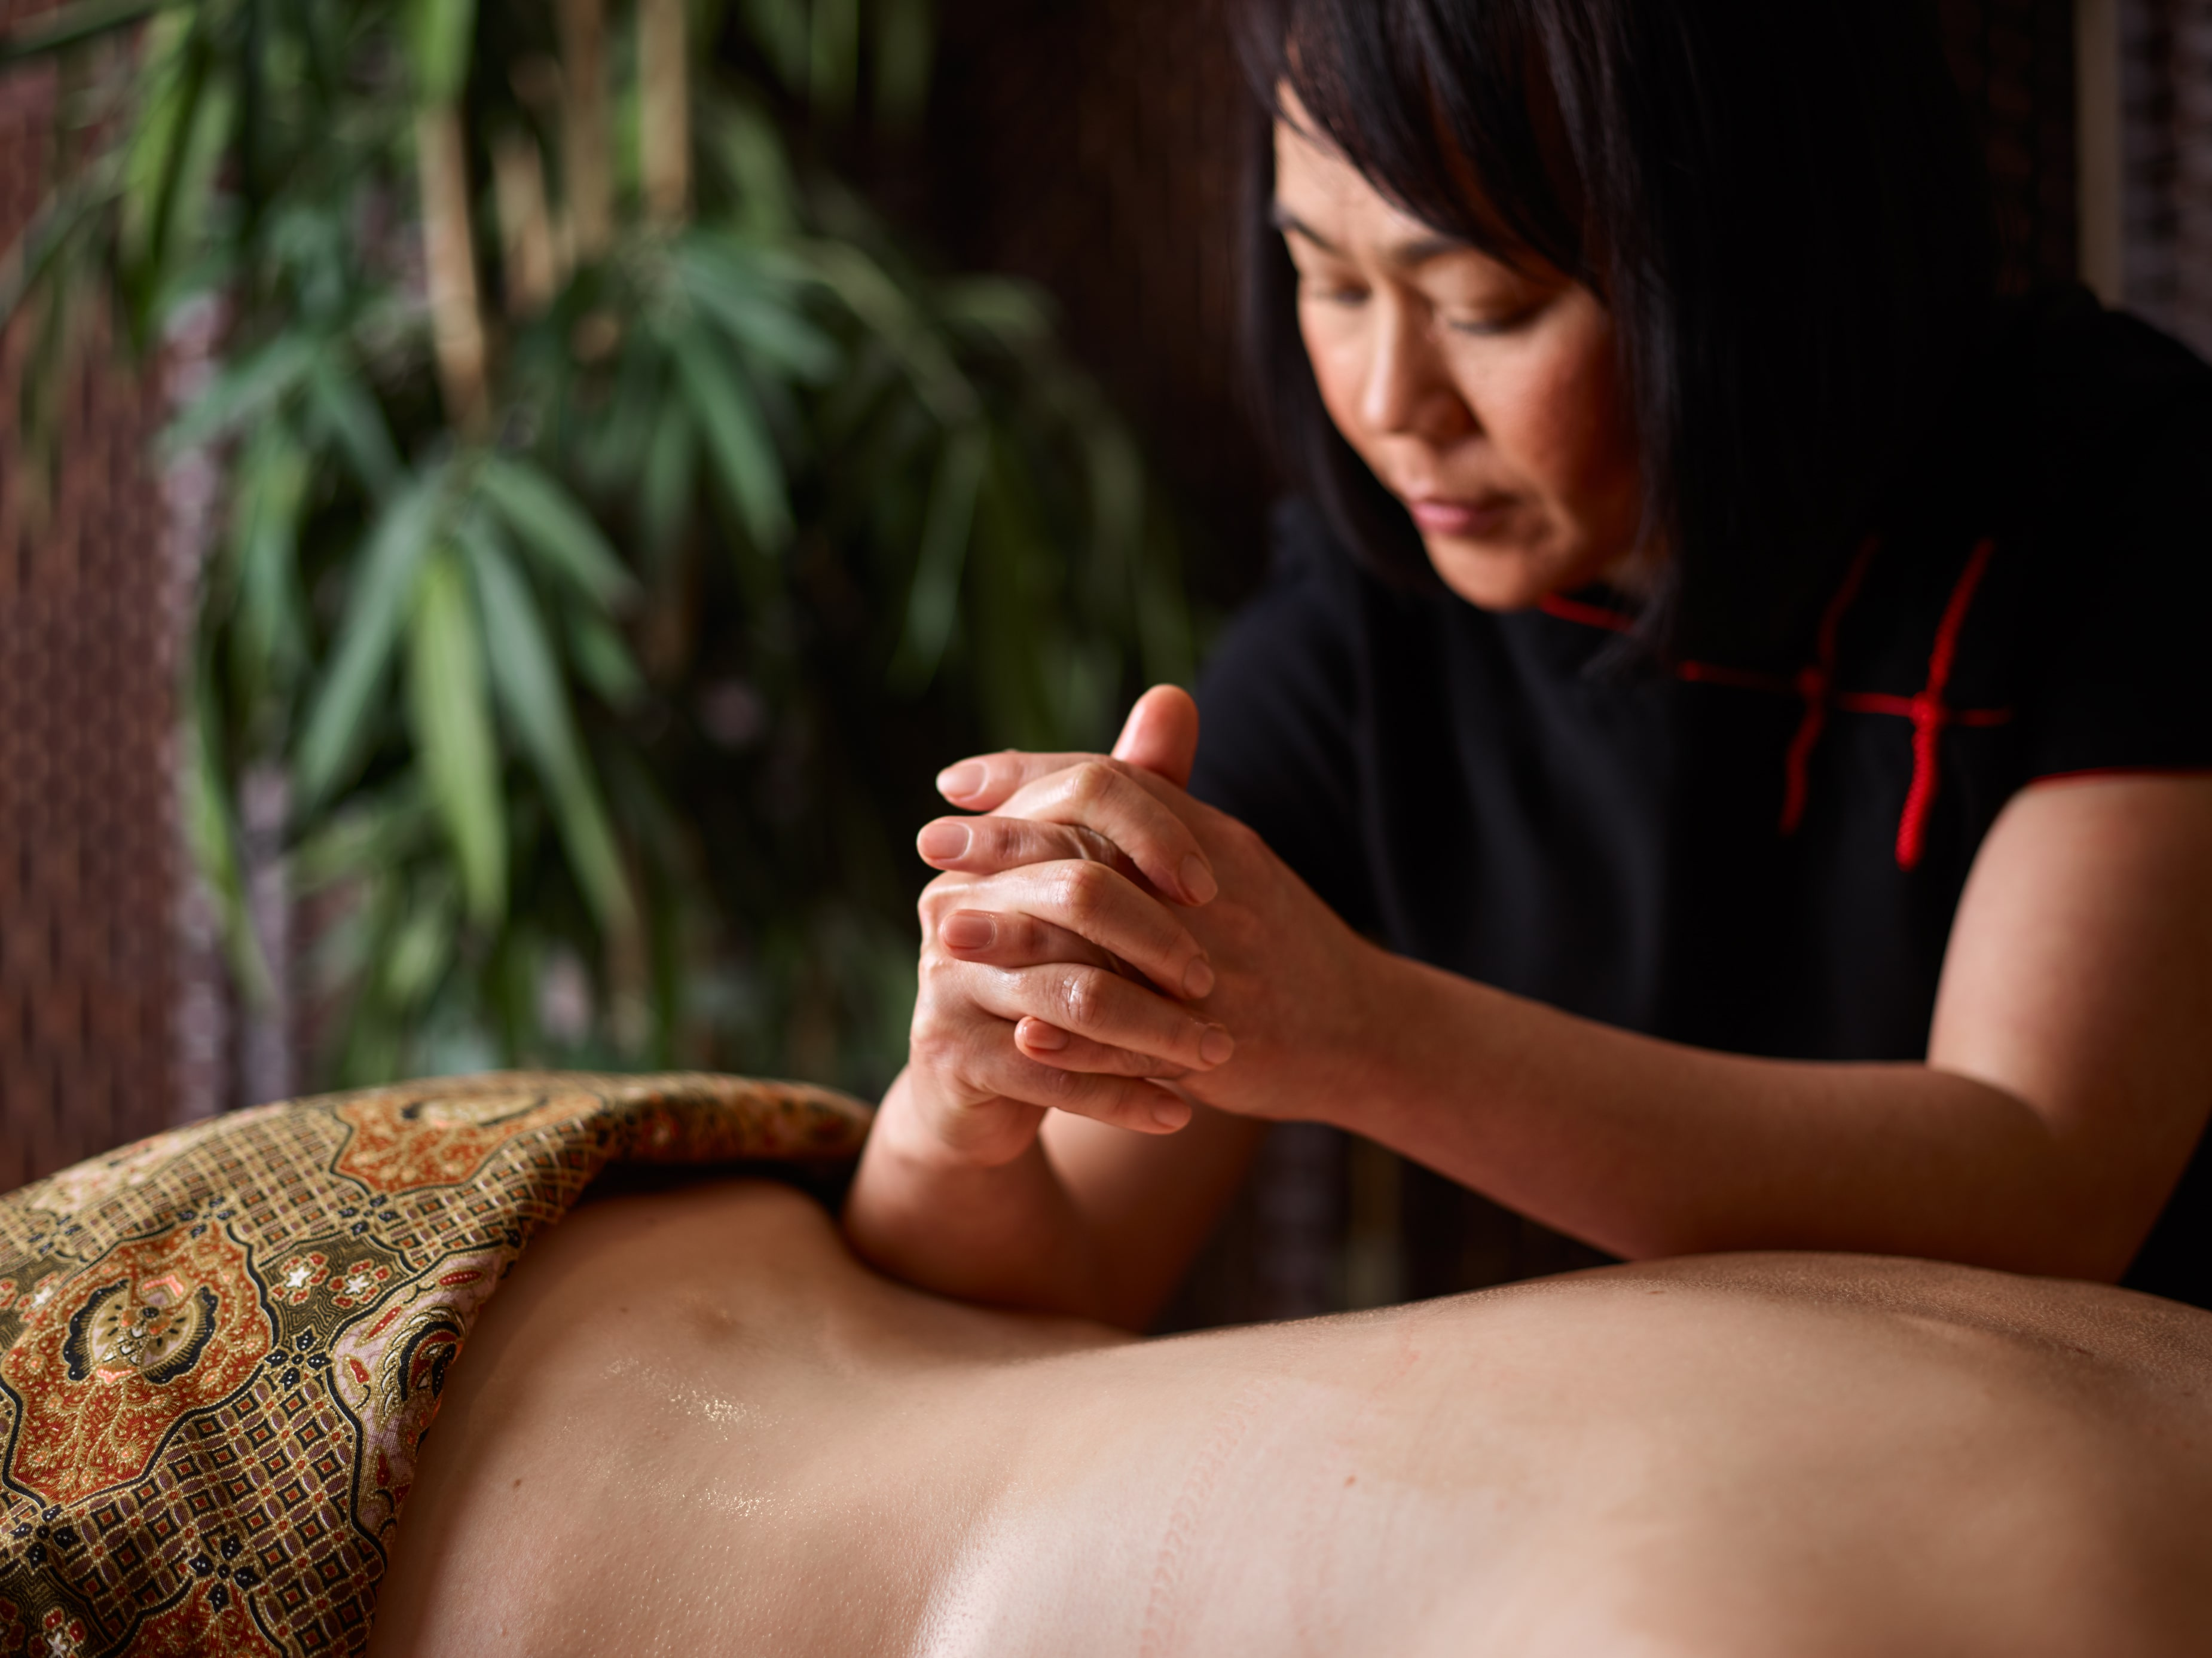 Therapist is using her forearms to massage a woman's back